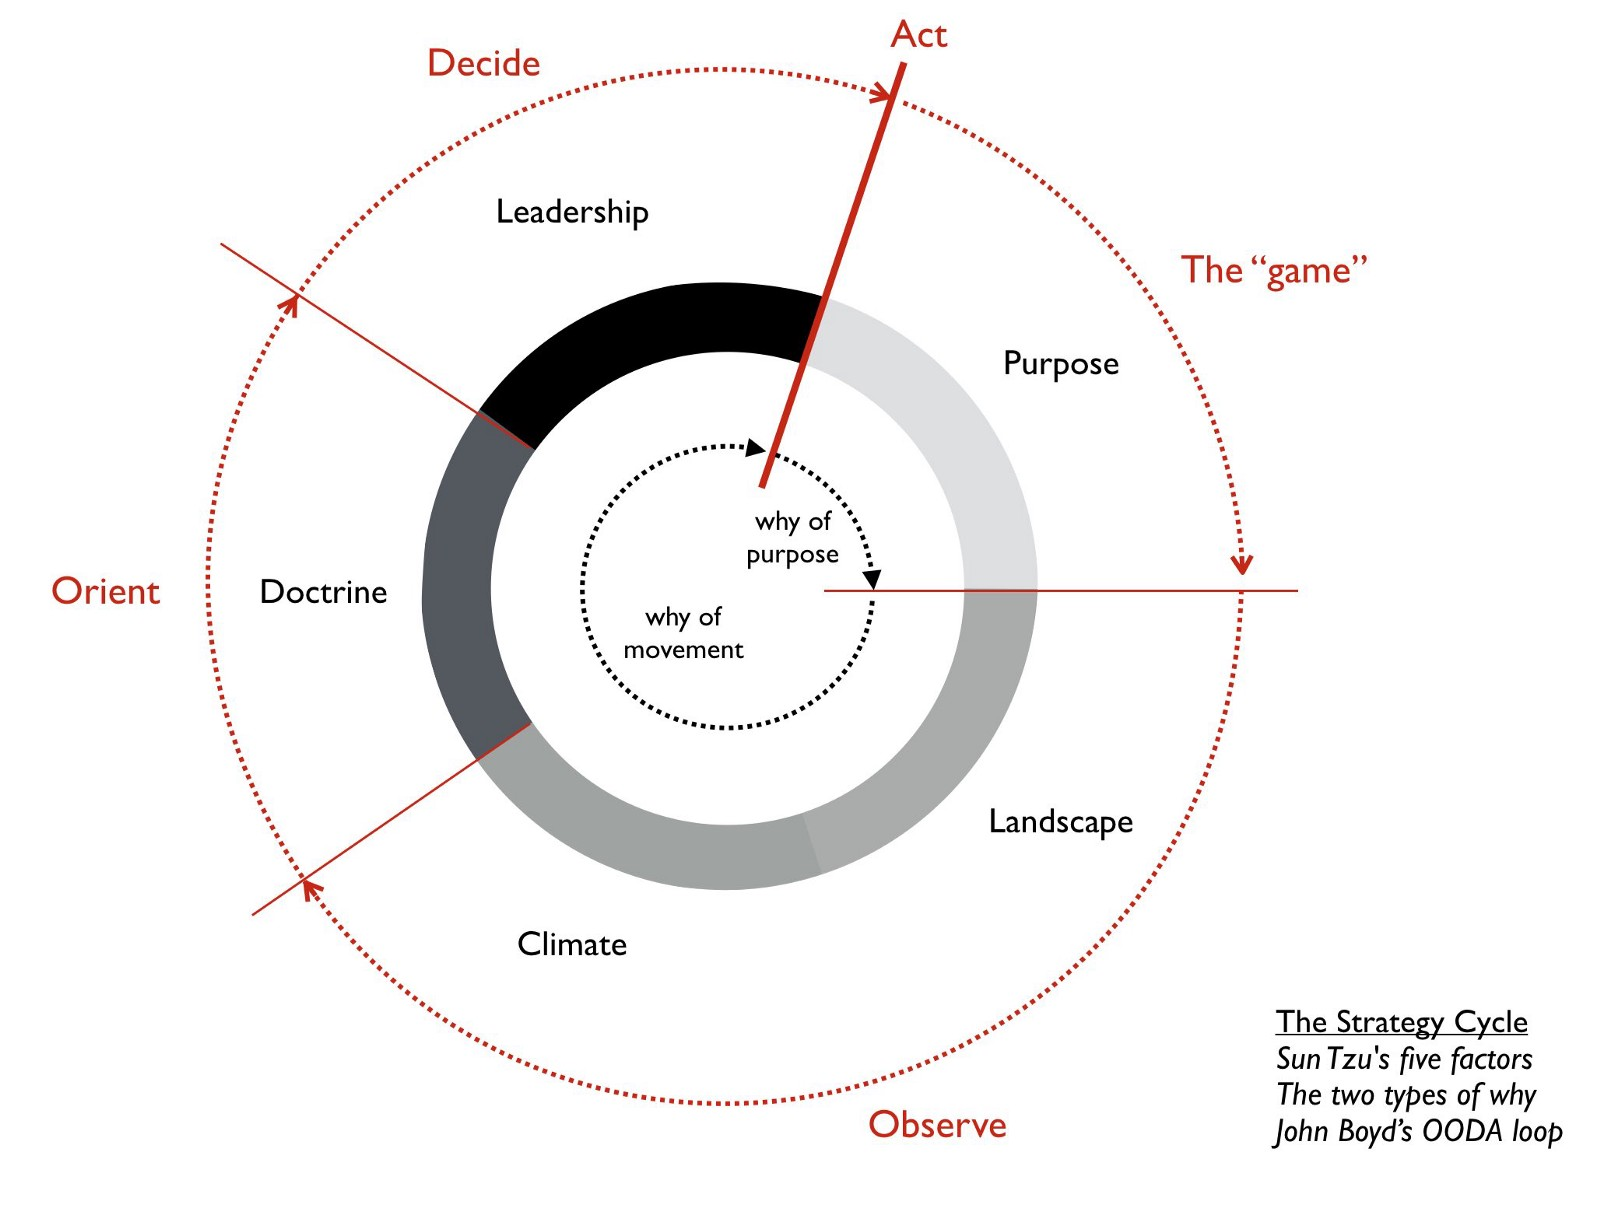 Figure showing how Wardley takes Sun Tzu's and John Boyd's concepts and merge them together